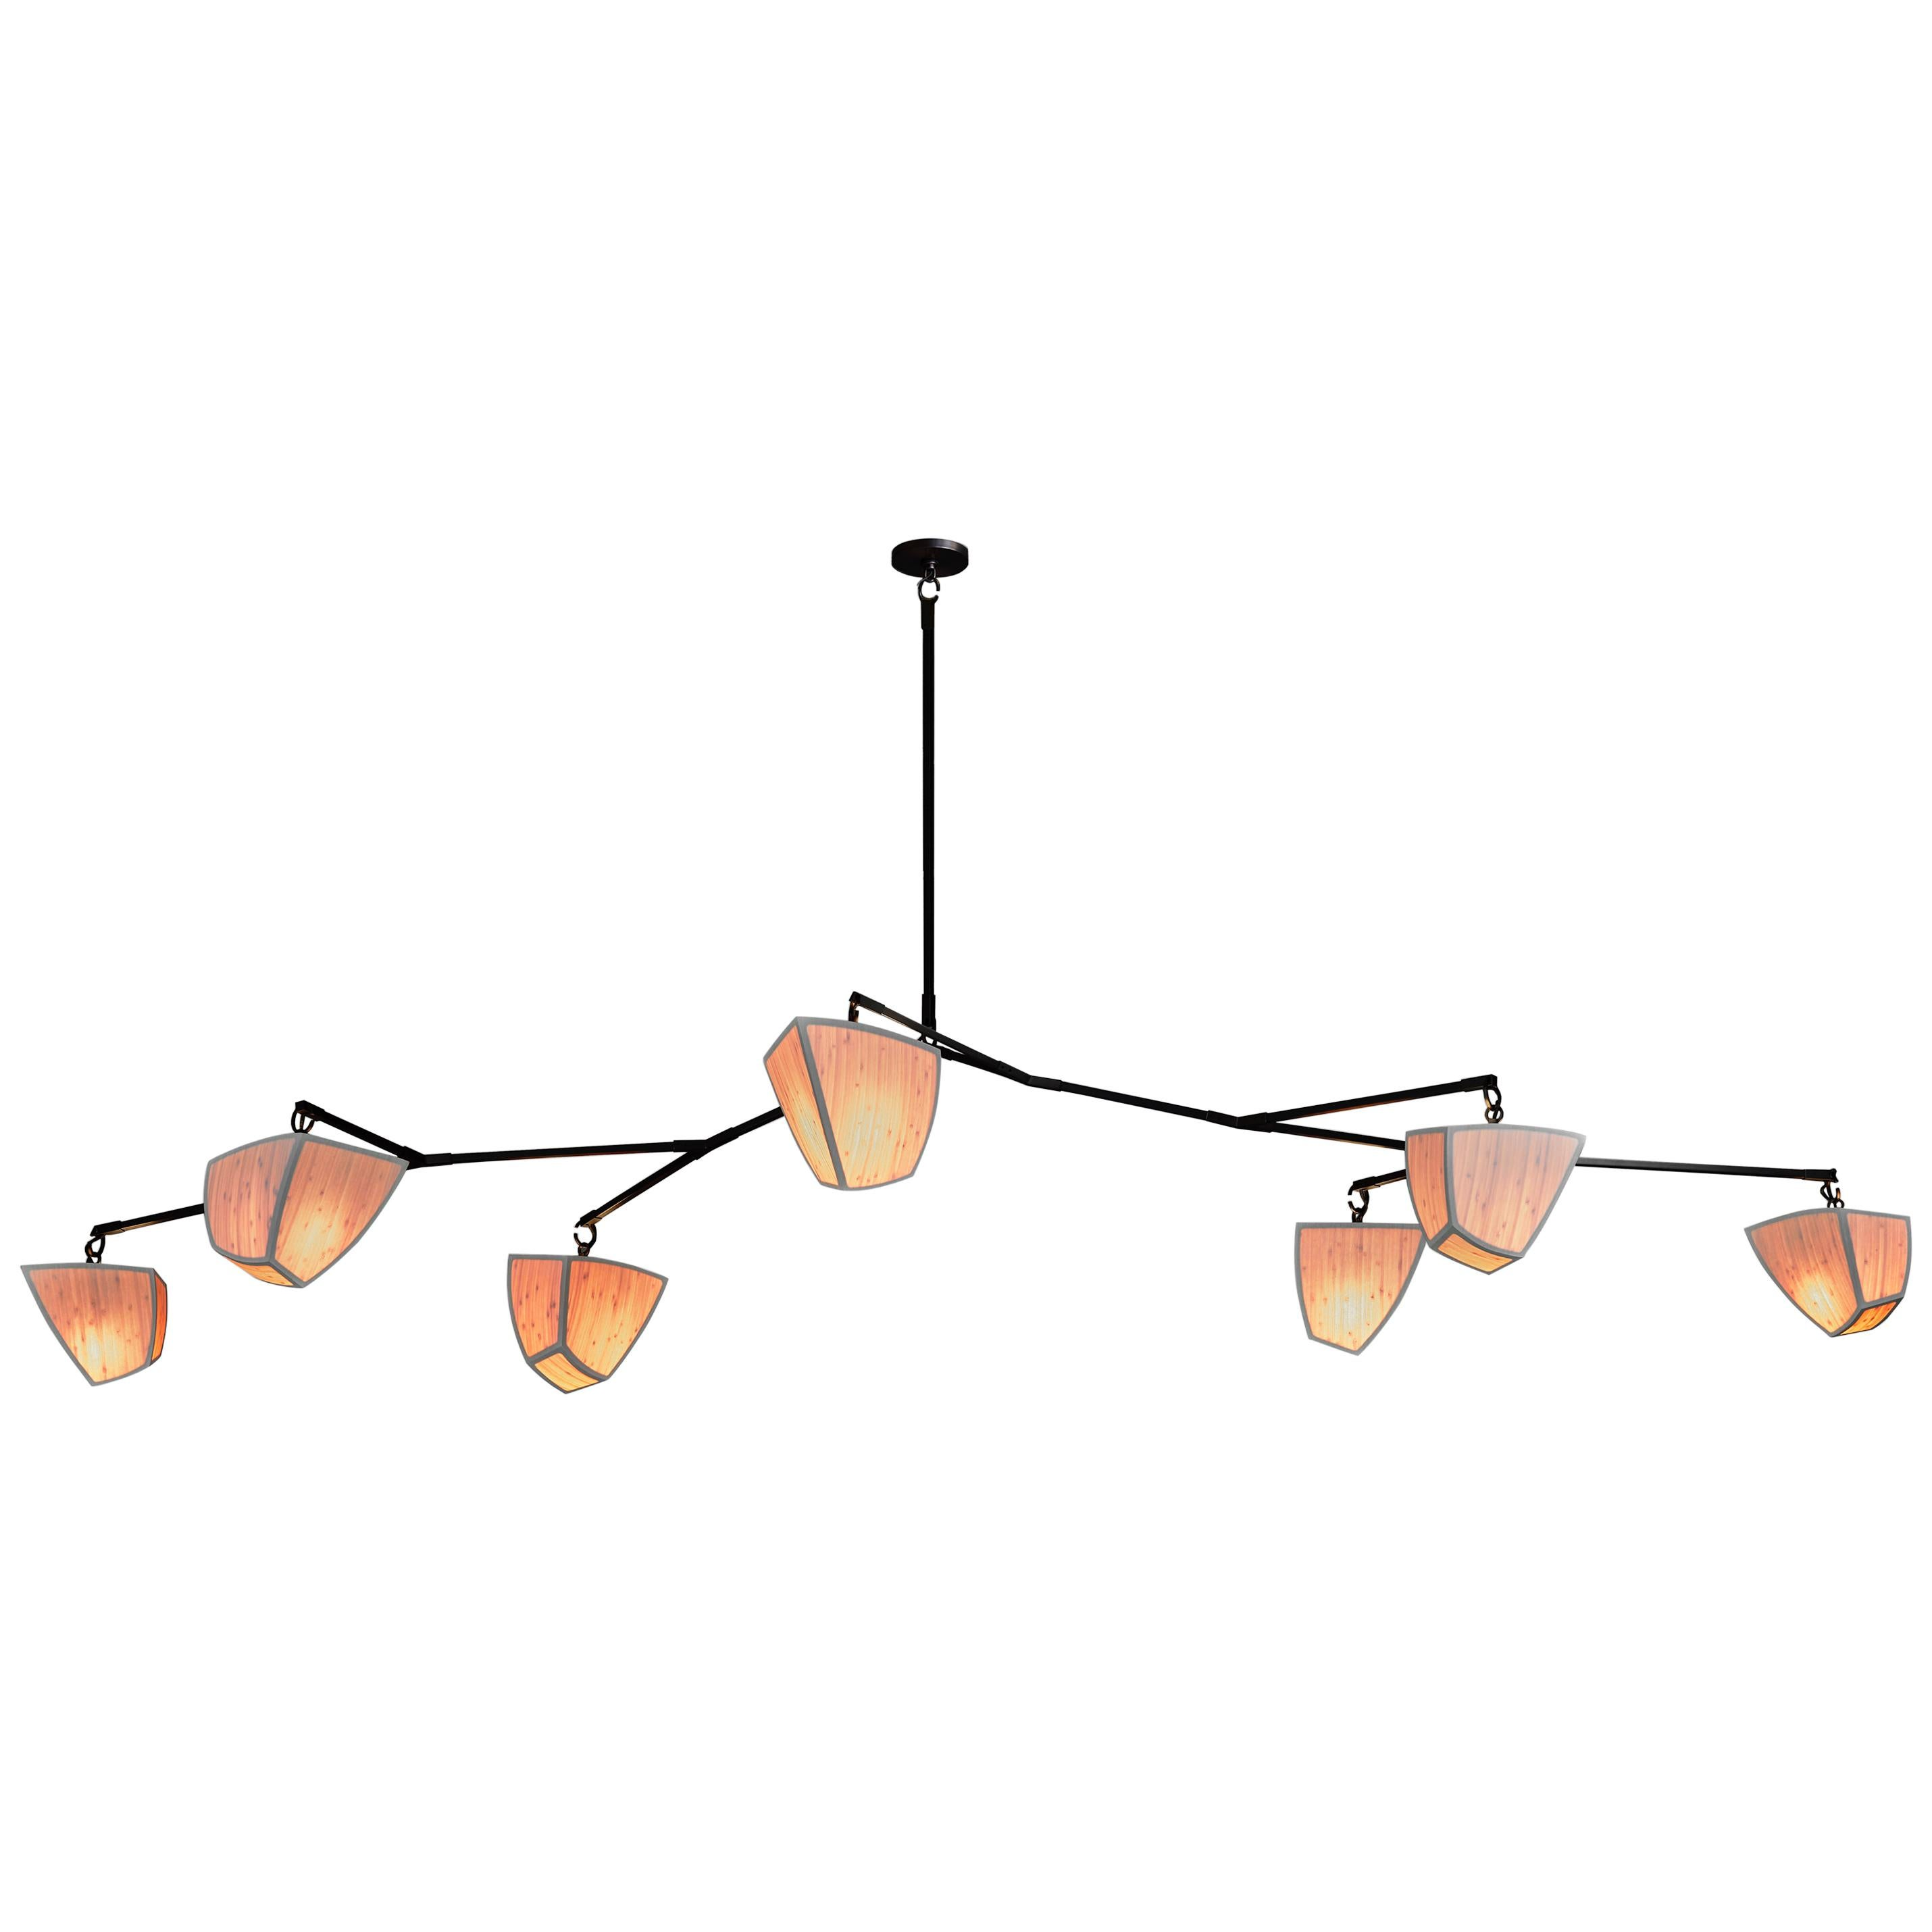 Cassiopeia 7 Bamboo ((2A3B2C) - mobile chandelier by Andrea Claire Studio